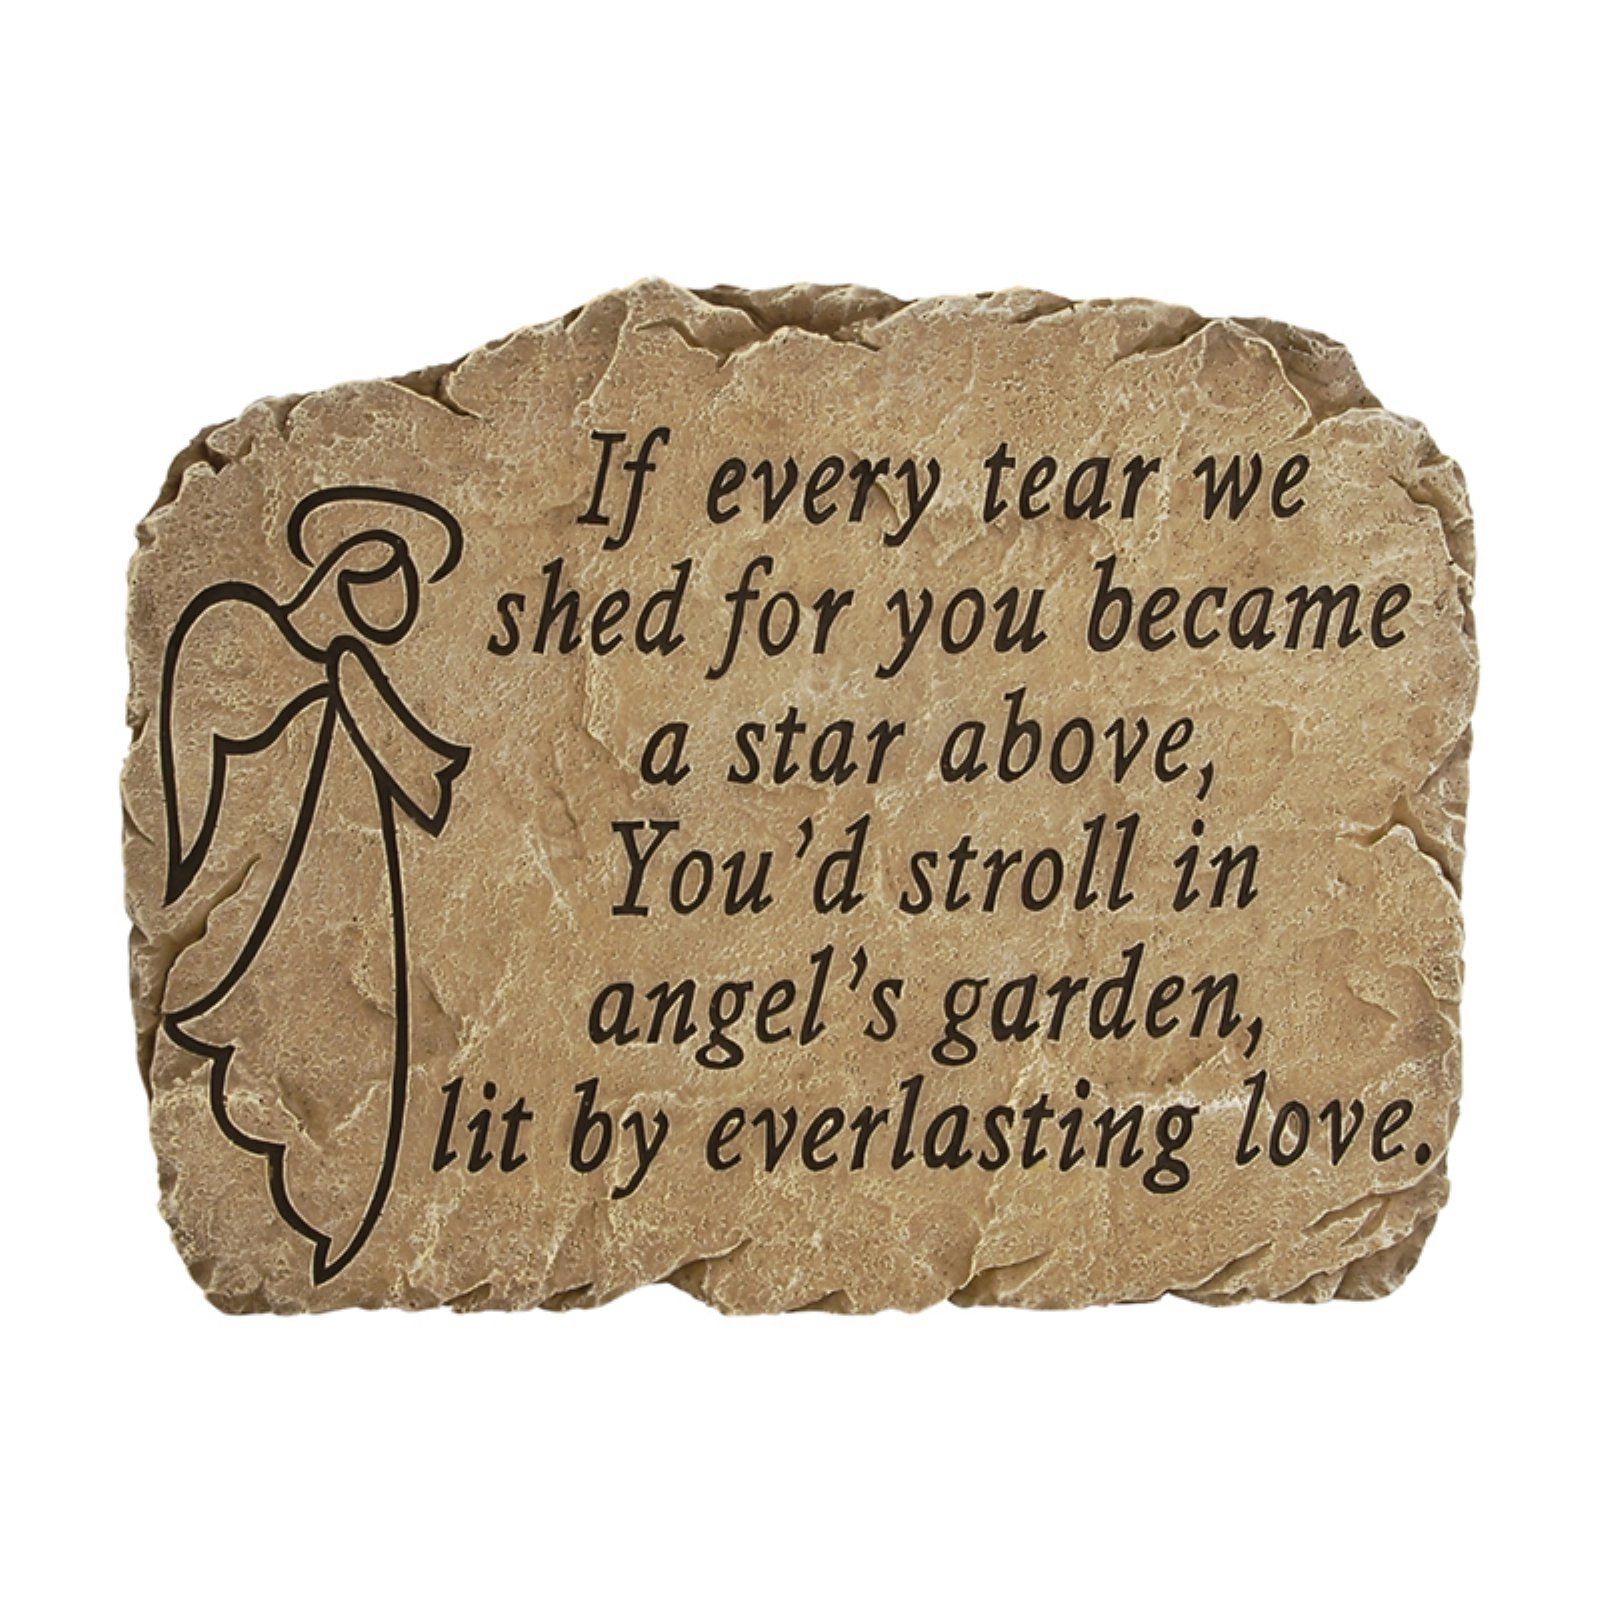 Carson Home Accents Angel's Garden Garden Stone by Garden Accents